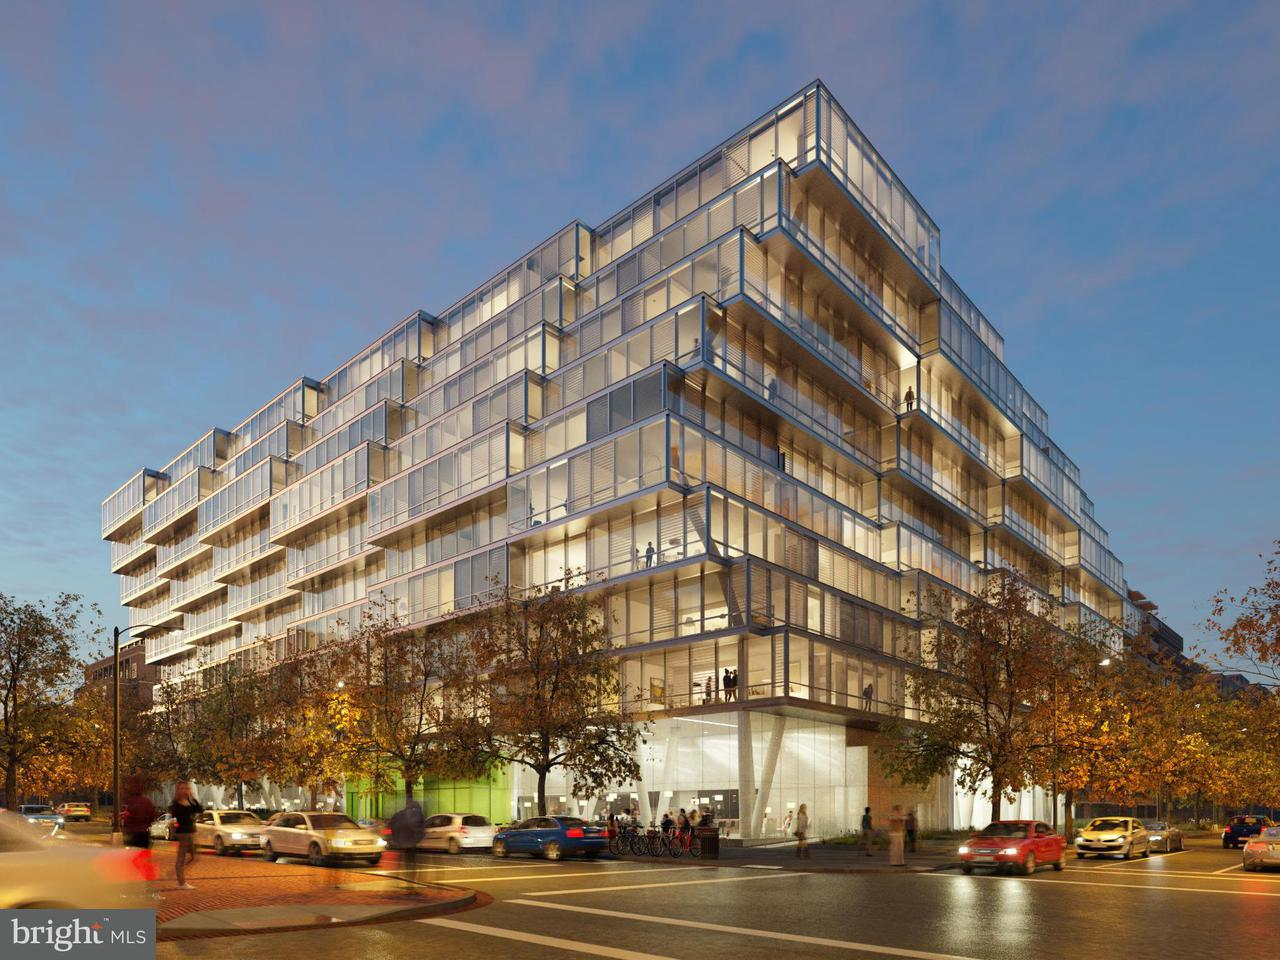 Condominium for Sale at 1111 24th St Nw #95 1111 24th St Nw #95 Washington, District Of Columbia 20037 United States